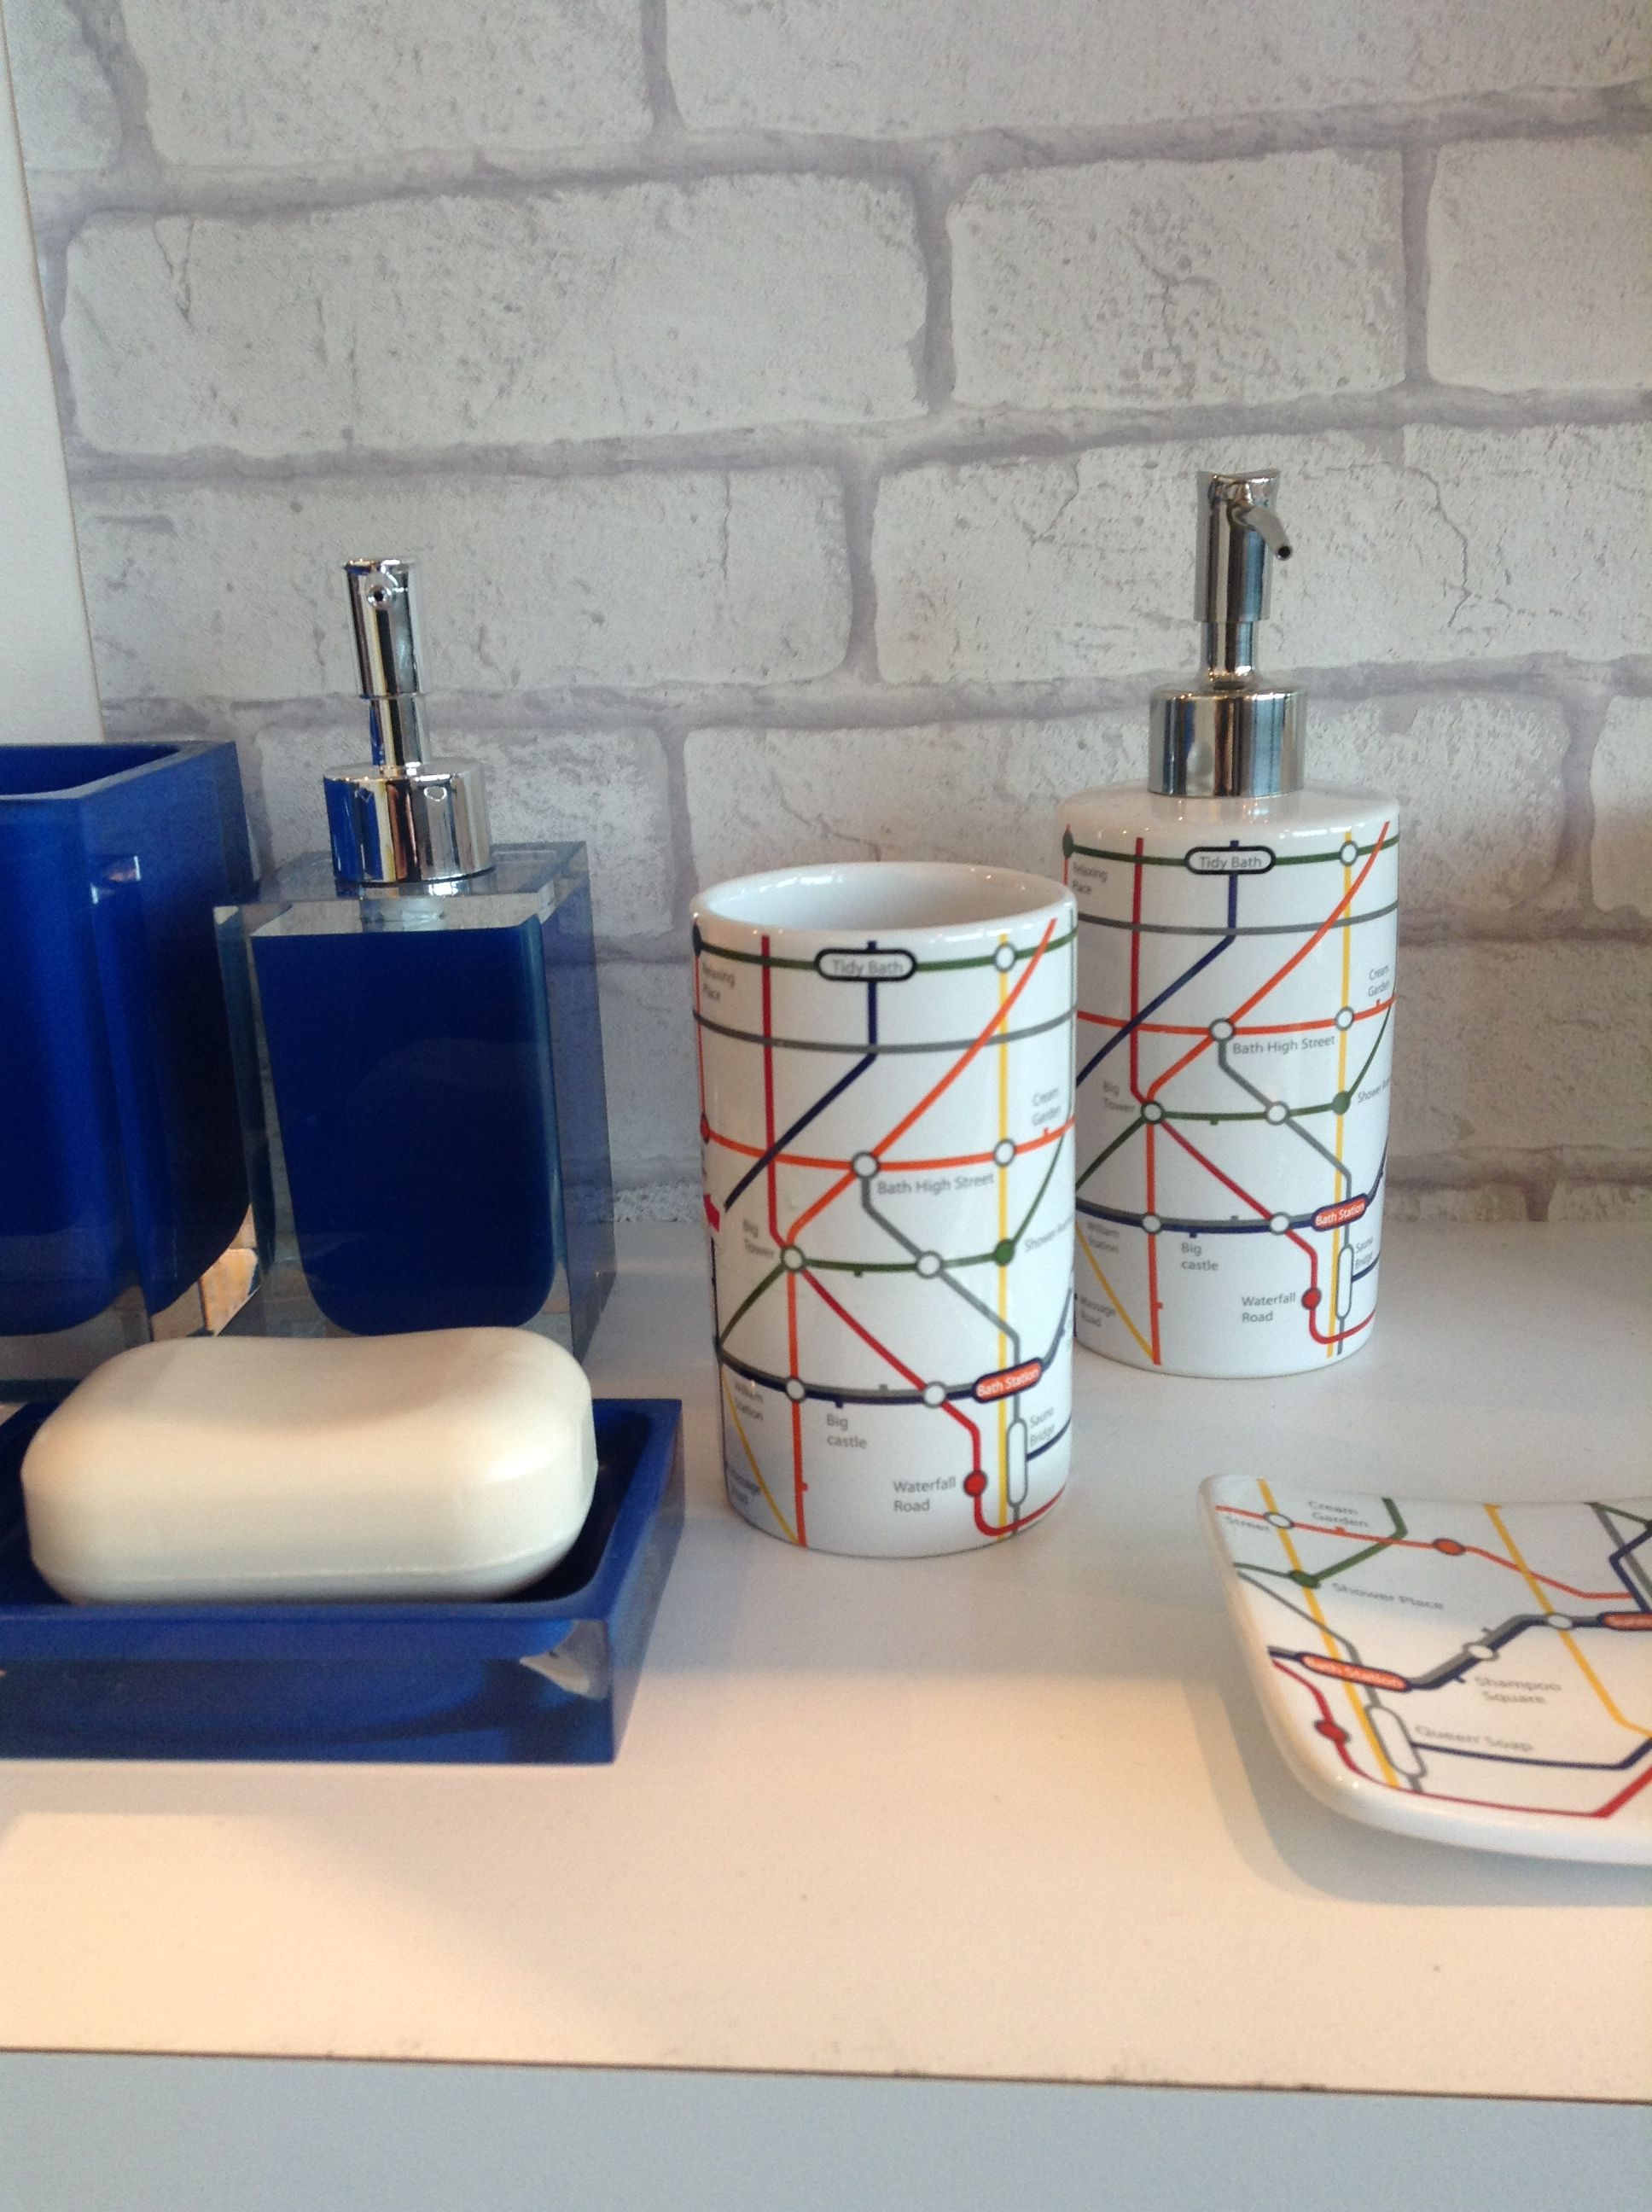 Genial Stylish Gloss Blue And London Tube Inspired Bathroom Accessories. #bathroom